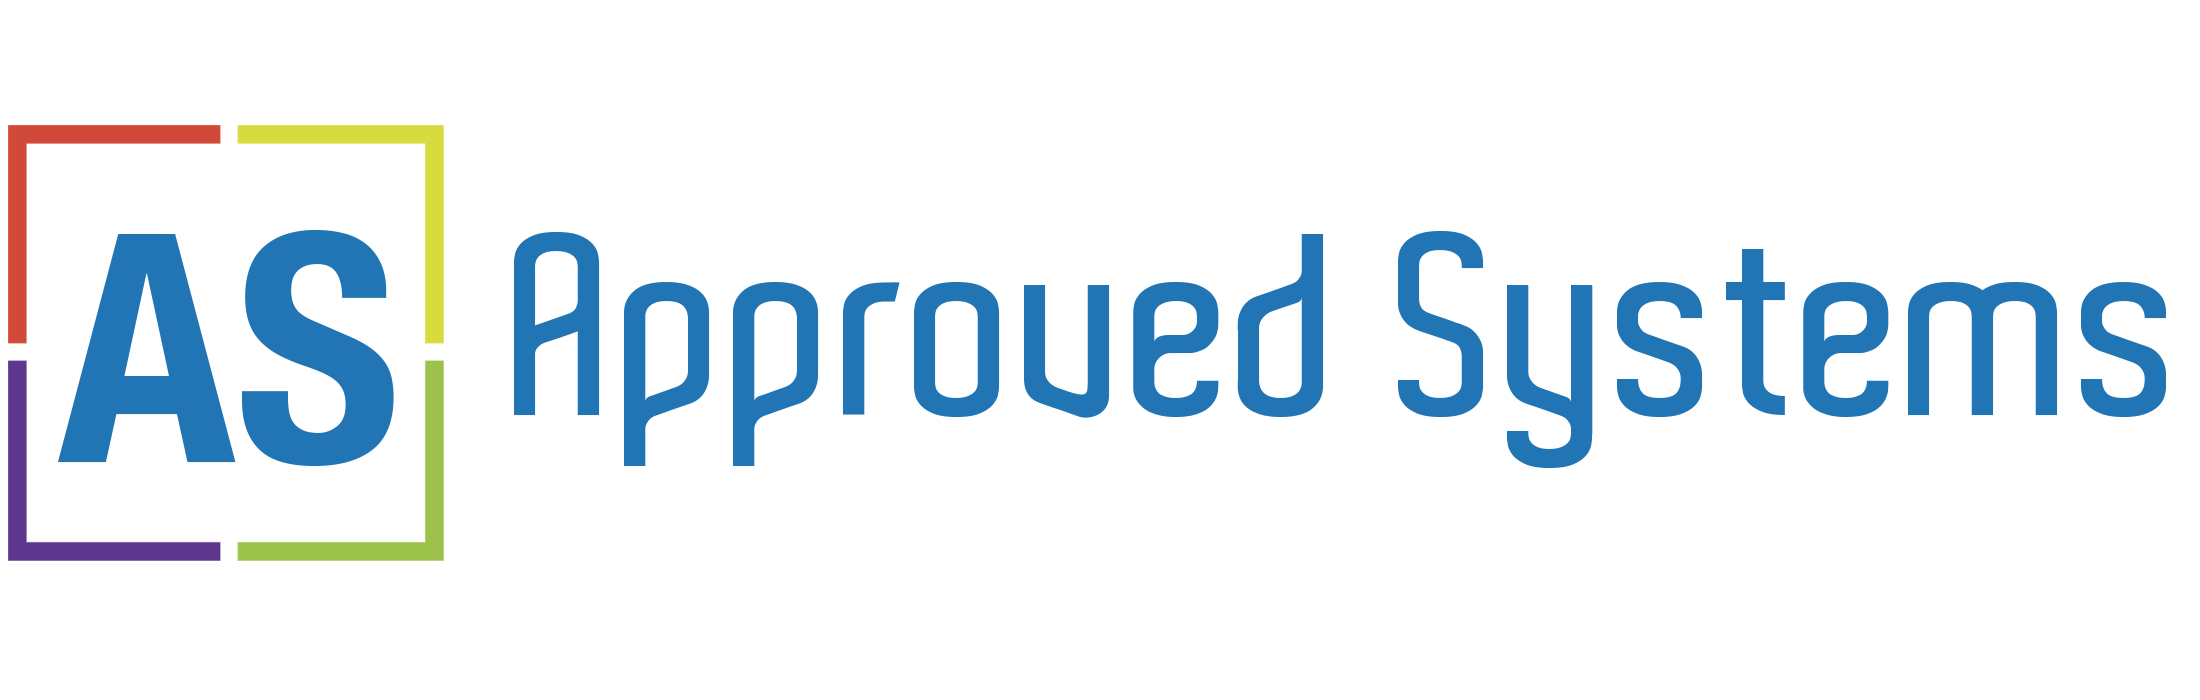 Approved Systems